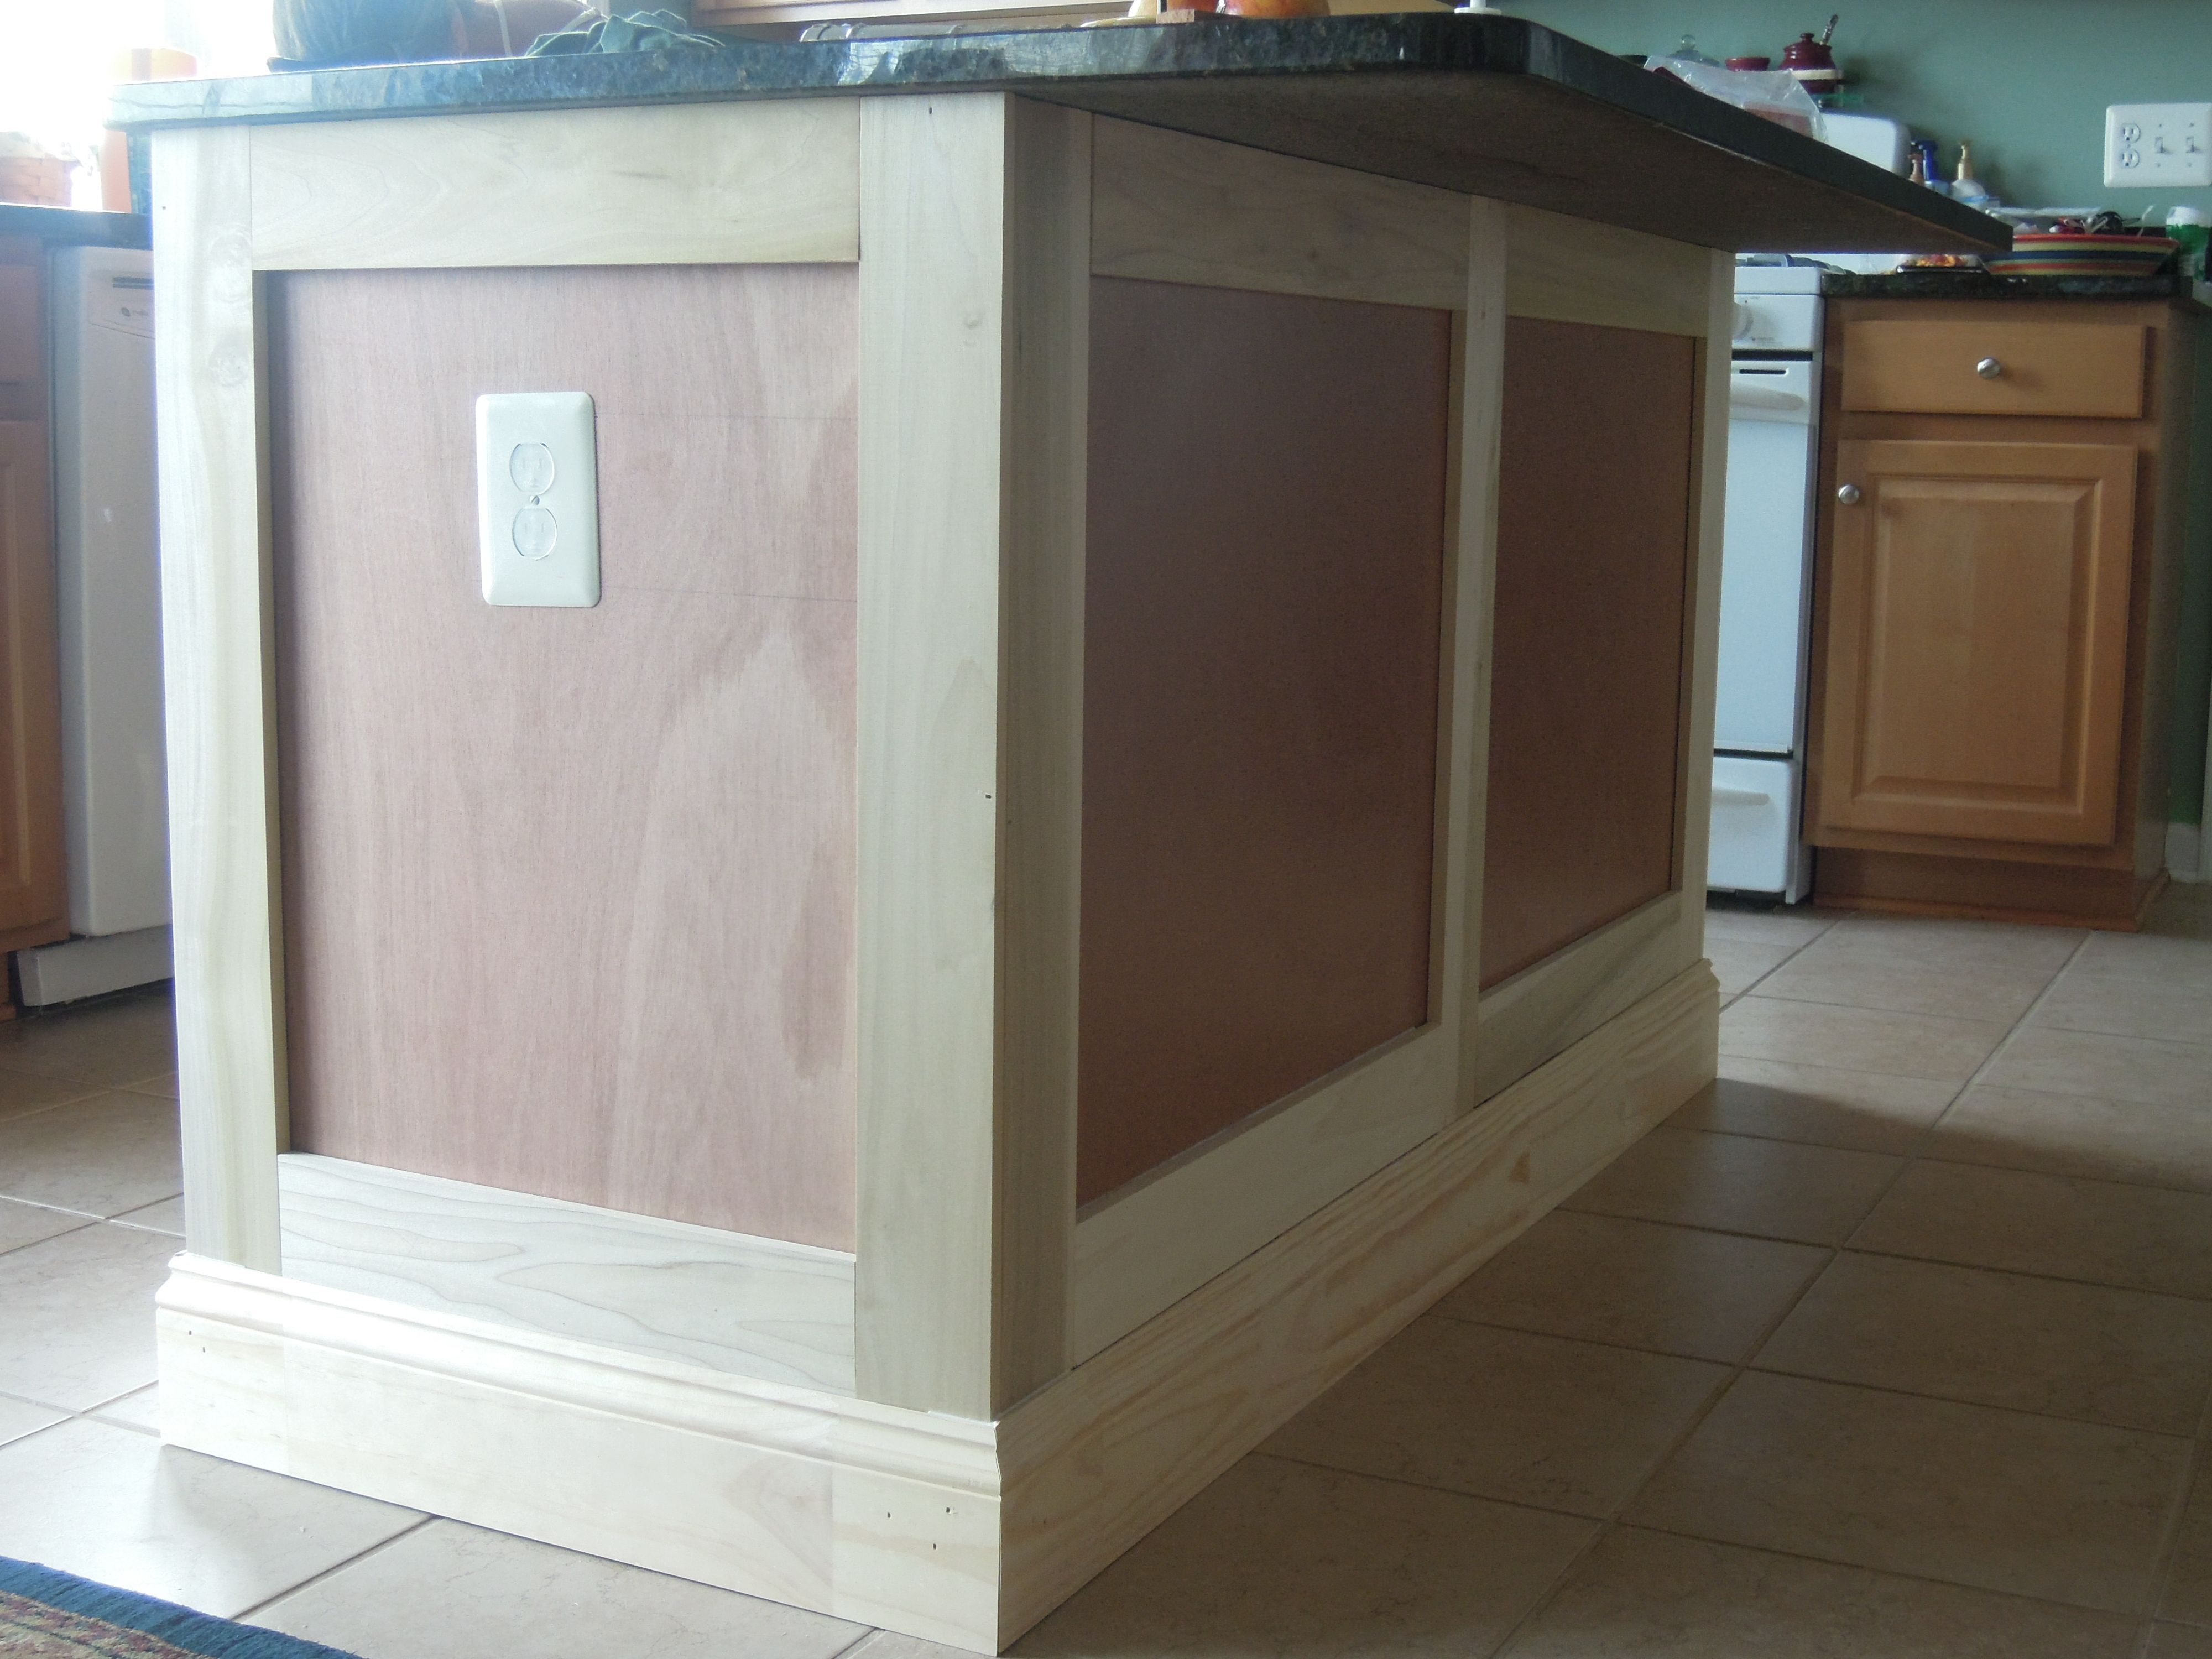 Diy Kitchen Island Remodel Kitchen Island Molding Kitchen Island Trim Diy Remodel